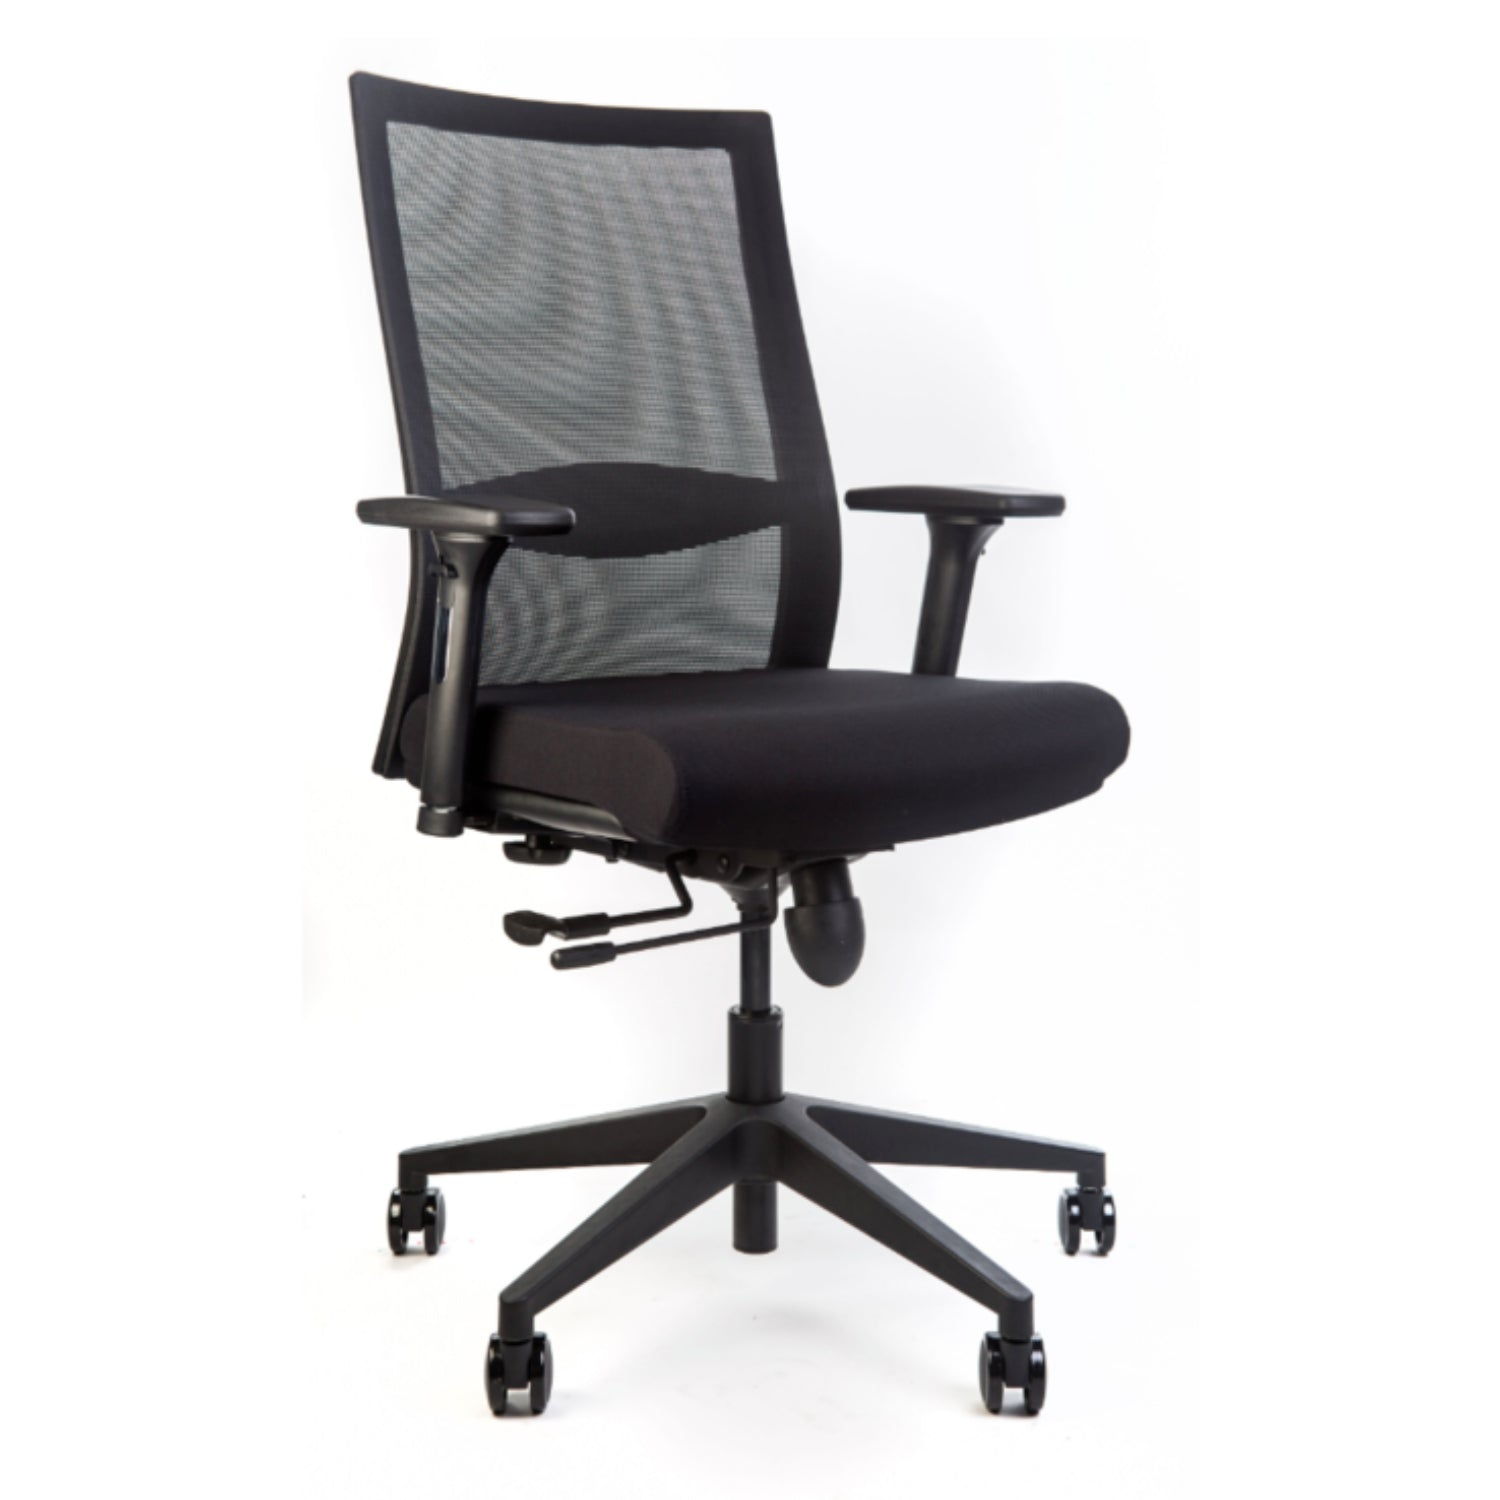 Element - S1 Ergonomic Task Chair - Duckys Office Furniture